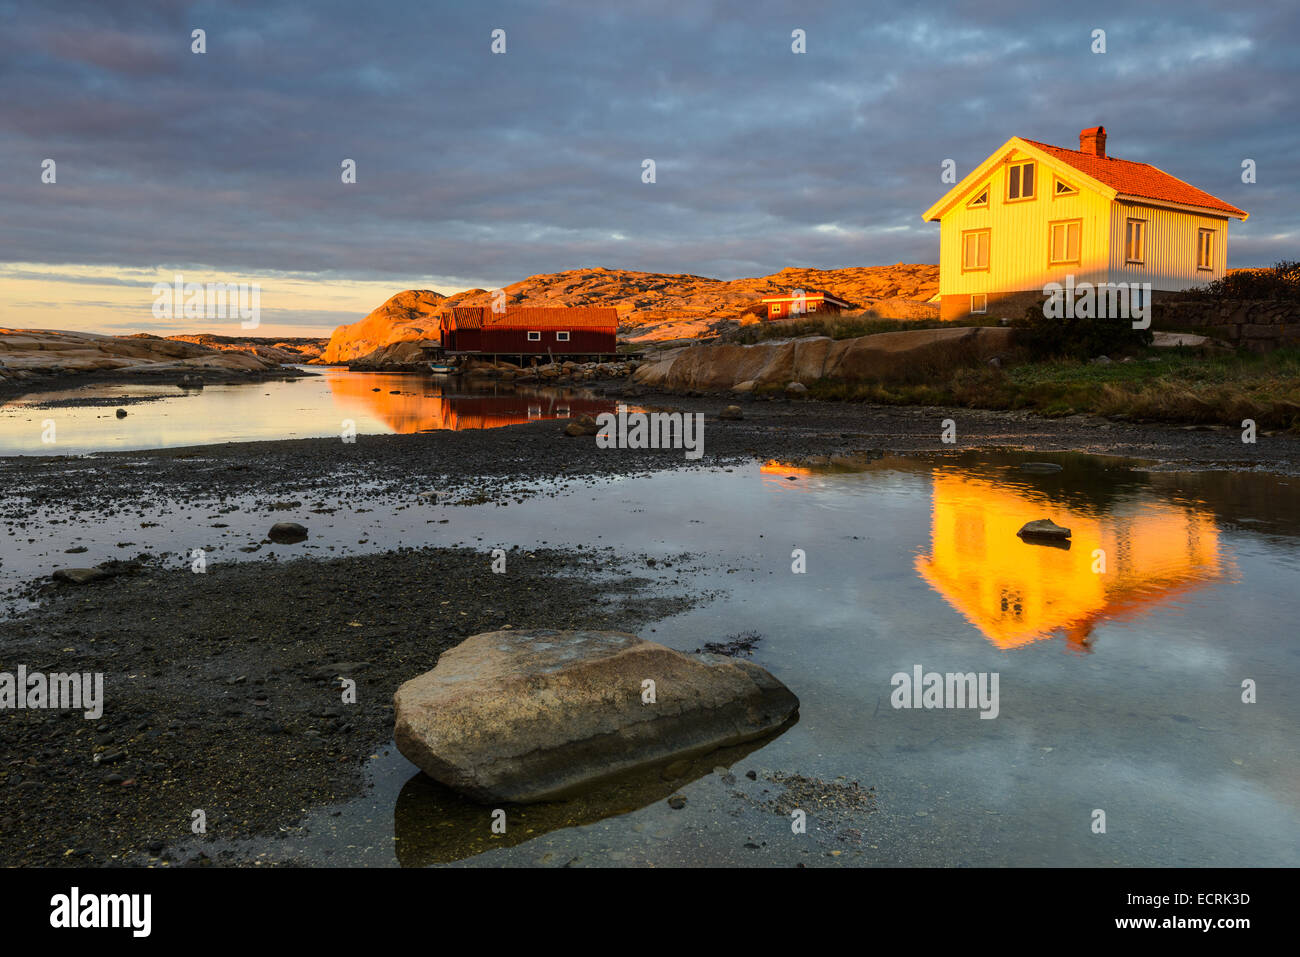 Sunset over a cottage on the shore at low tide - Stock Image